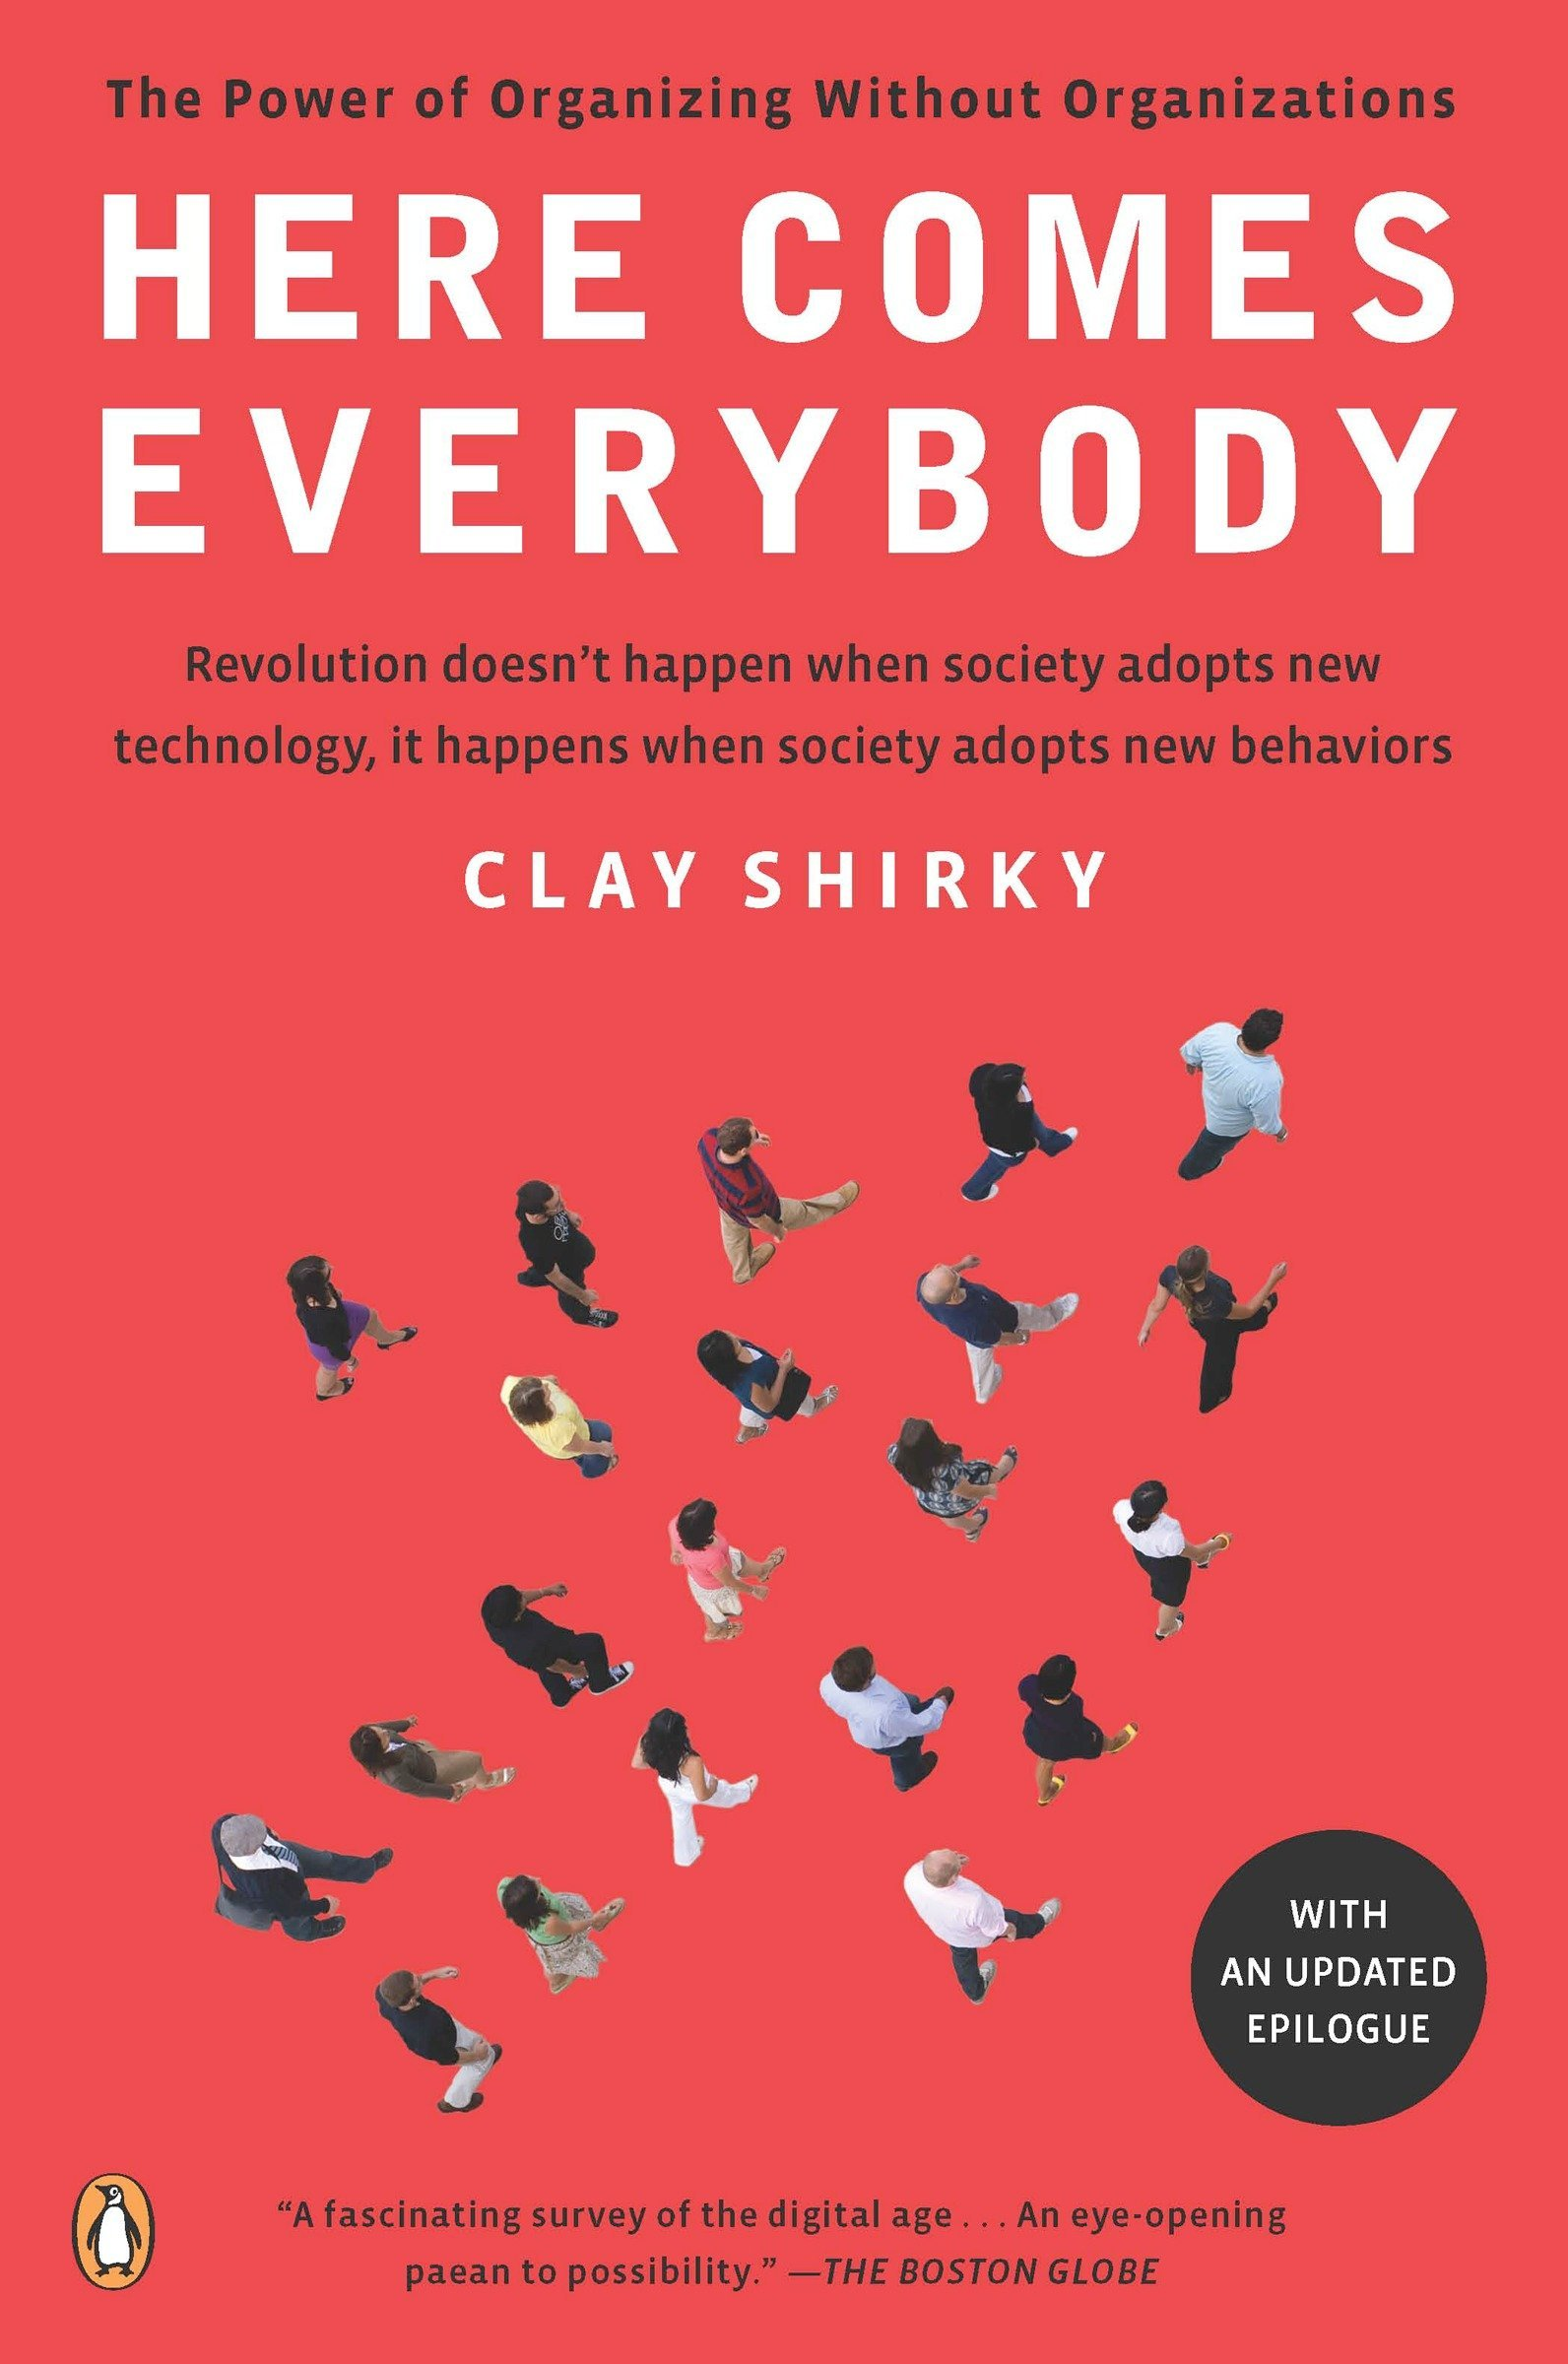 Here Comes Everybody: The Power of Organizing Without Organizations: Amazon.es: Clay Shirky: Libros en idiomas extranjeros